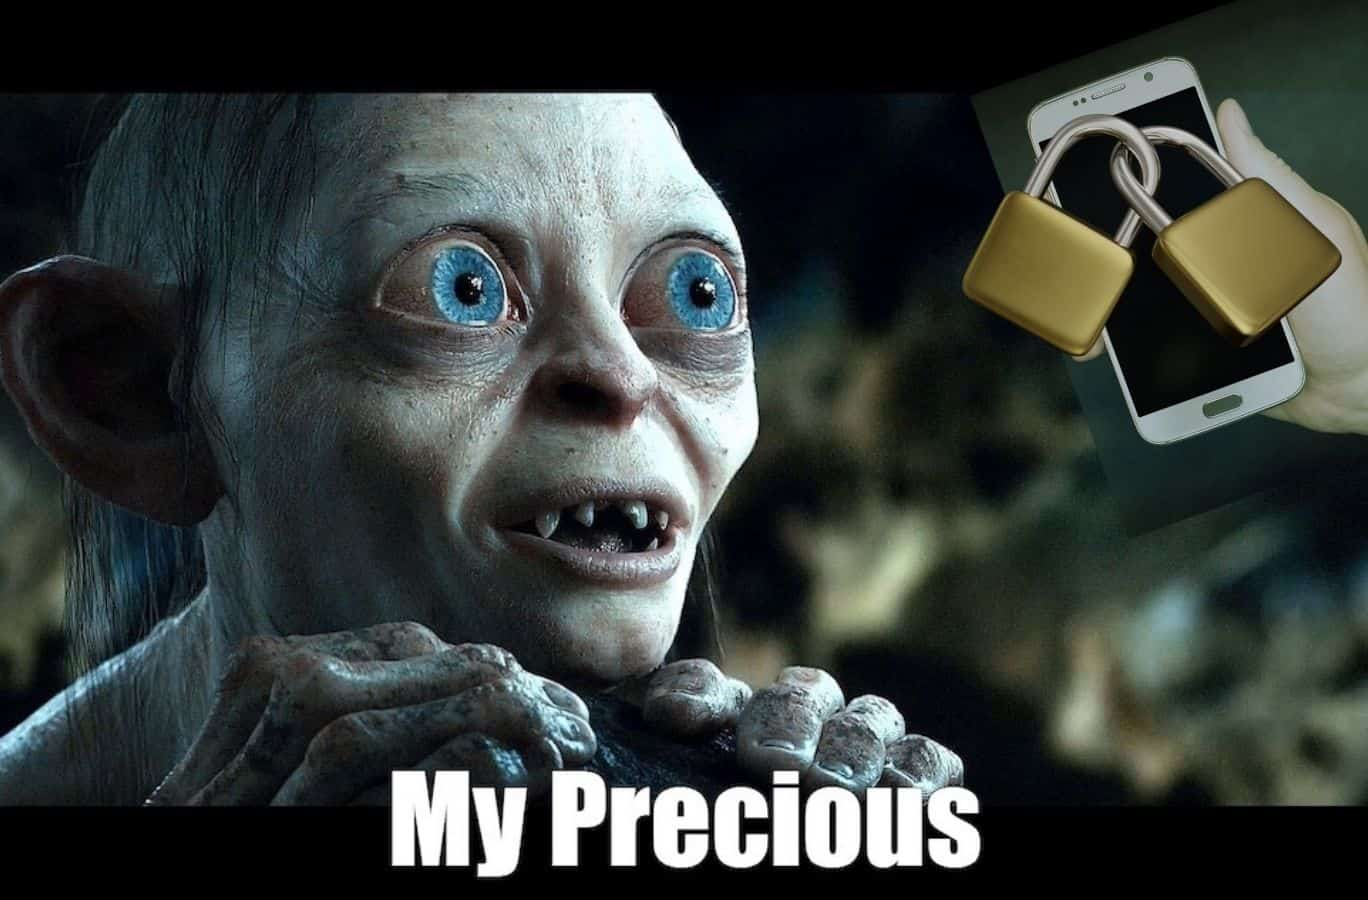 Gollum from Lord of the Rings stares lovingly at a cell phone locked away.